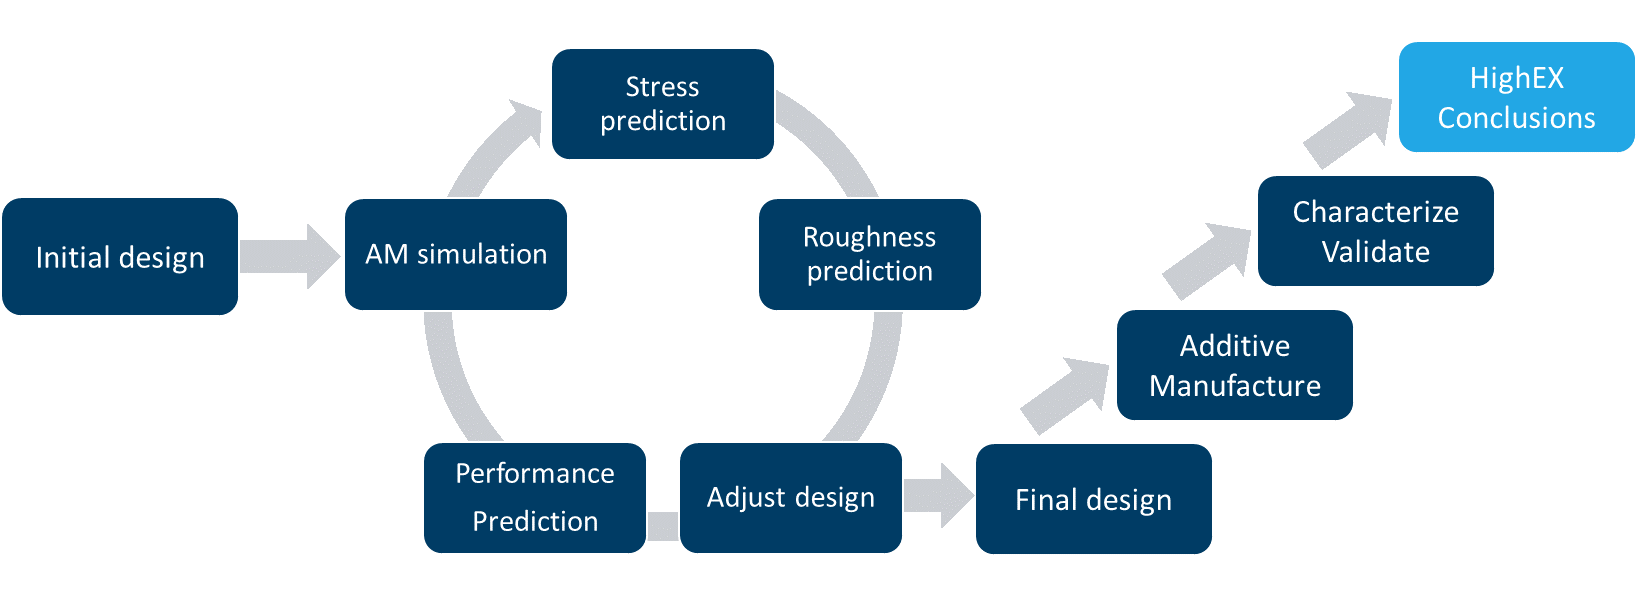 Figure 7: The HighEX project